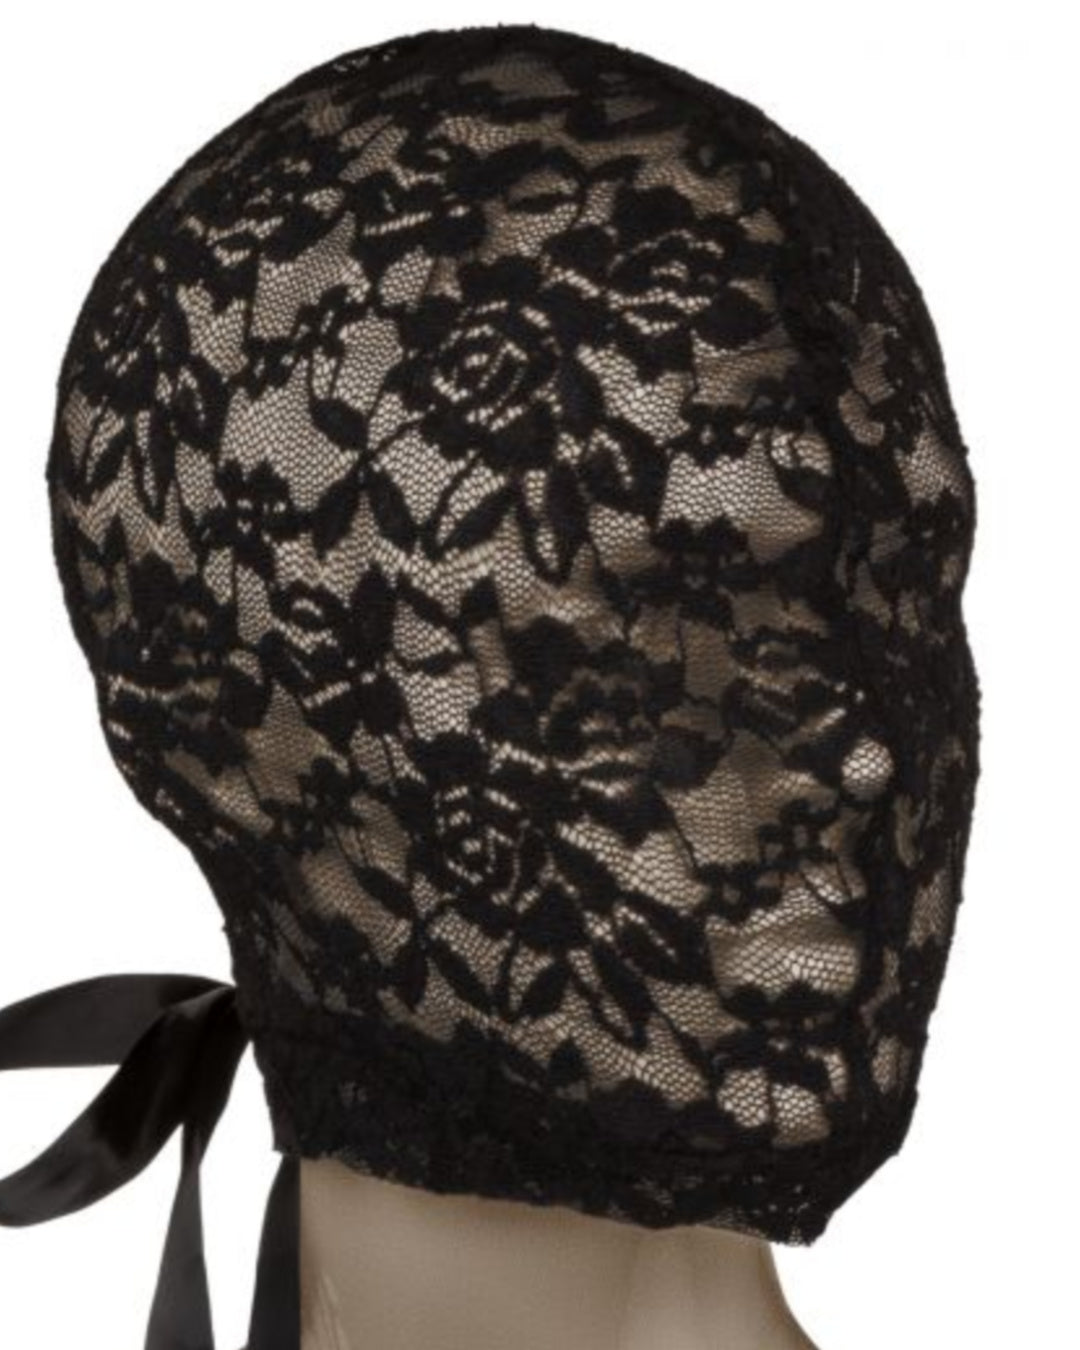 Scandal Corset Lace Hood - Black front view on mannequin